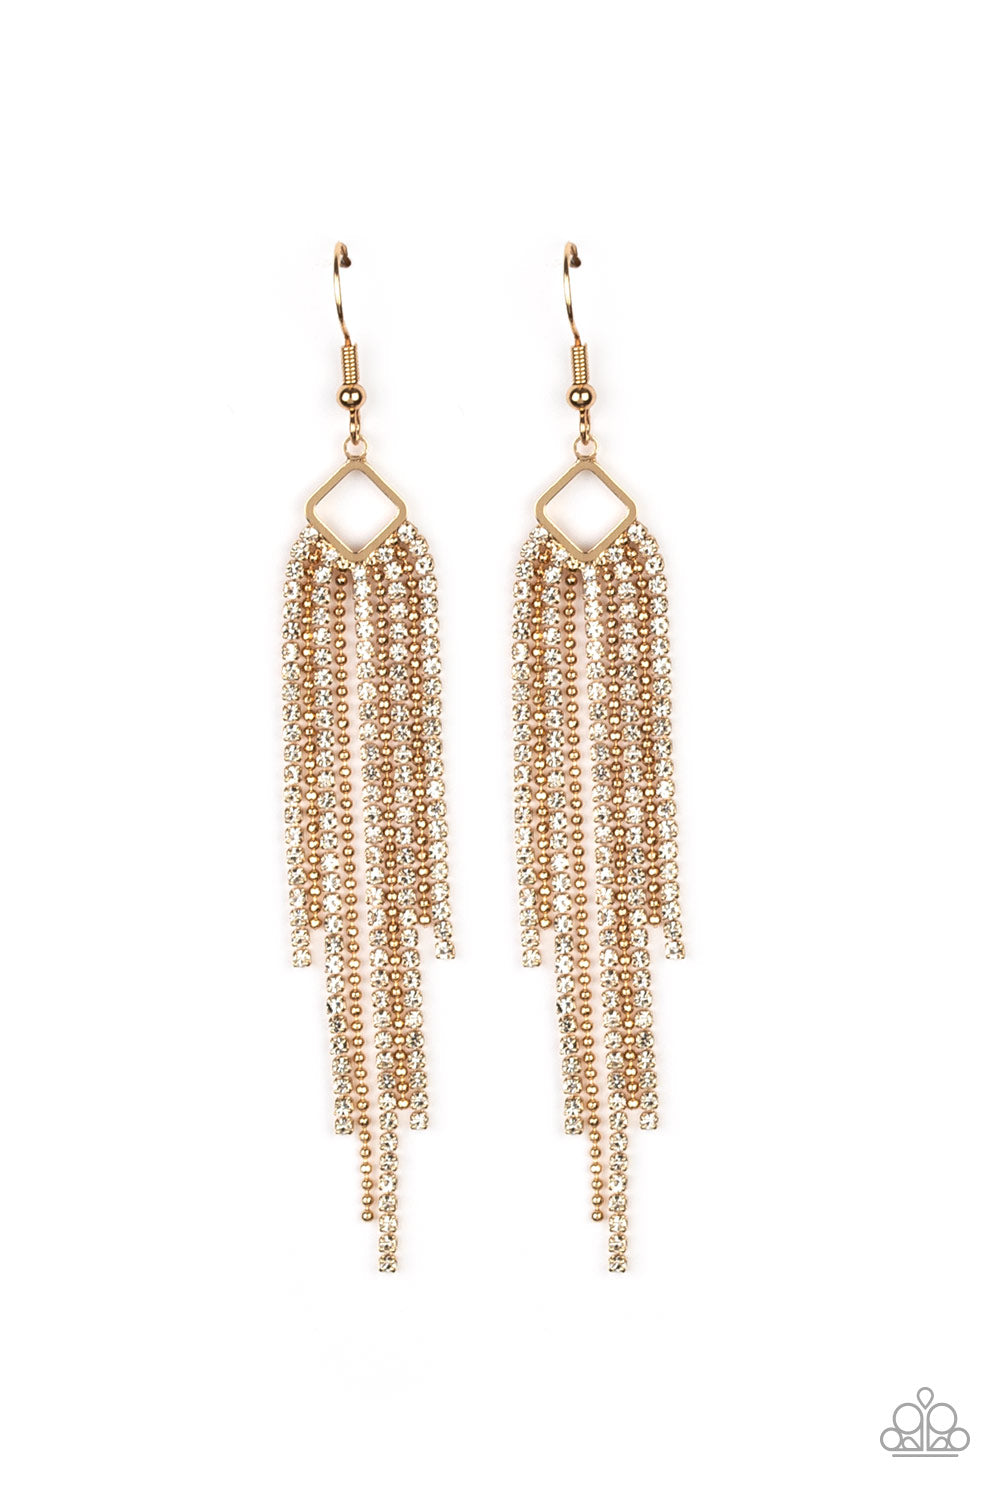 Singing in the REIGN - Gold Earring - Paparazzi Accessories